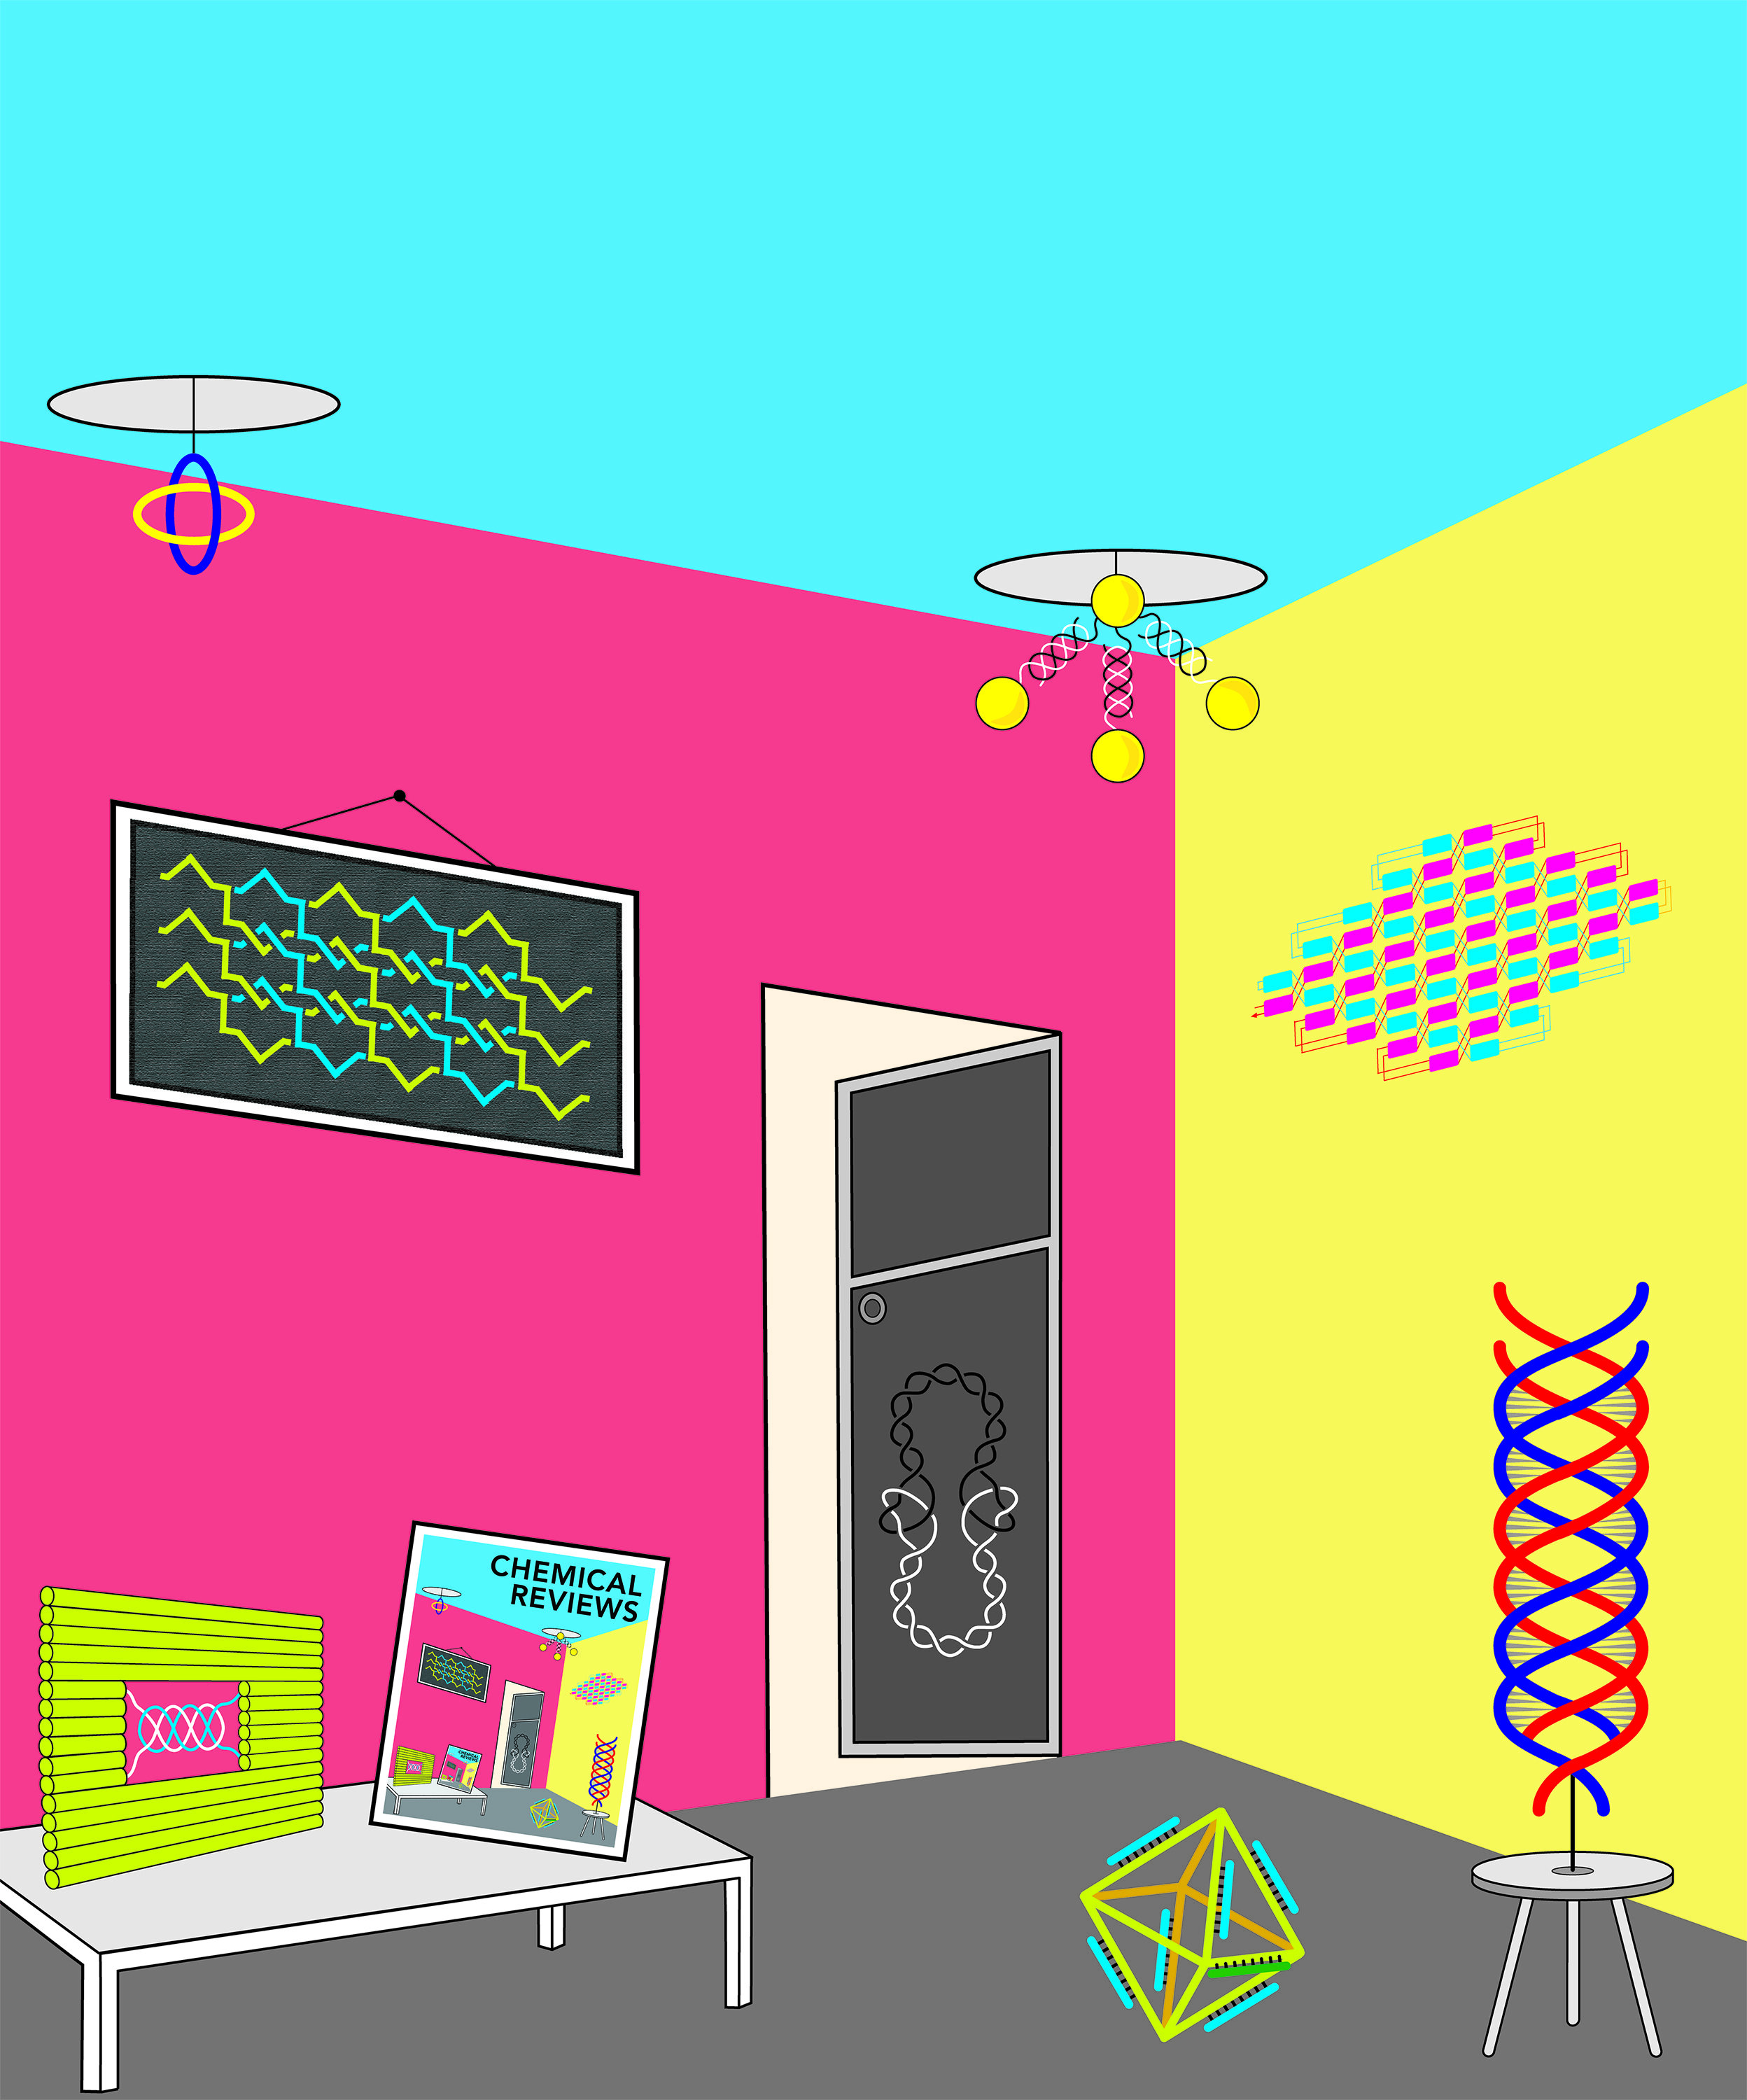 Paranemic crossover (PX) DNA.  A motif in DNA nanotechnology used to connect topologically closed molecules, to assemble a 3D object, and to create 2D DNA crystals. Cover art designed for the journal Chemical Reviews.